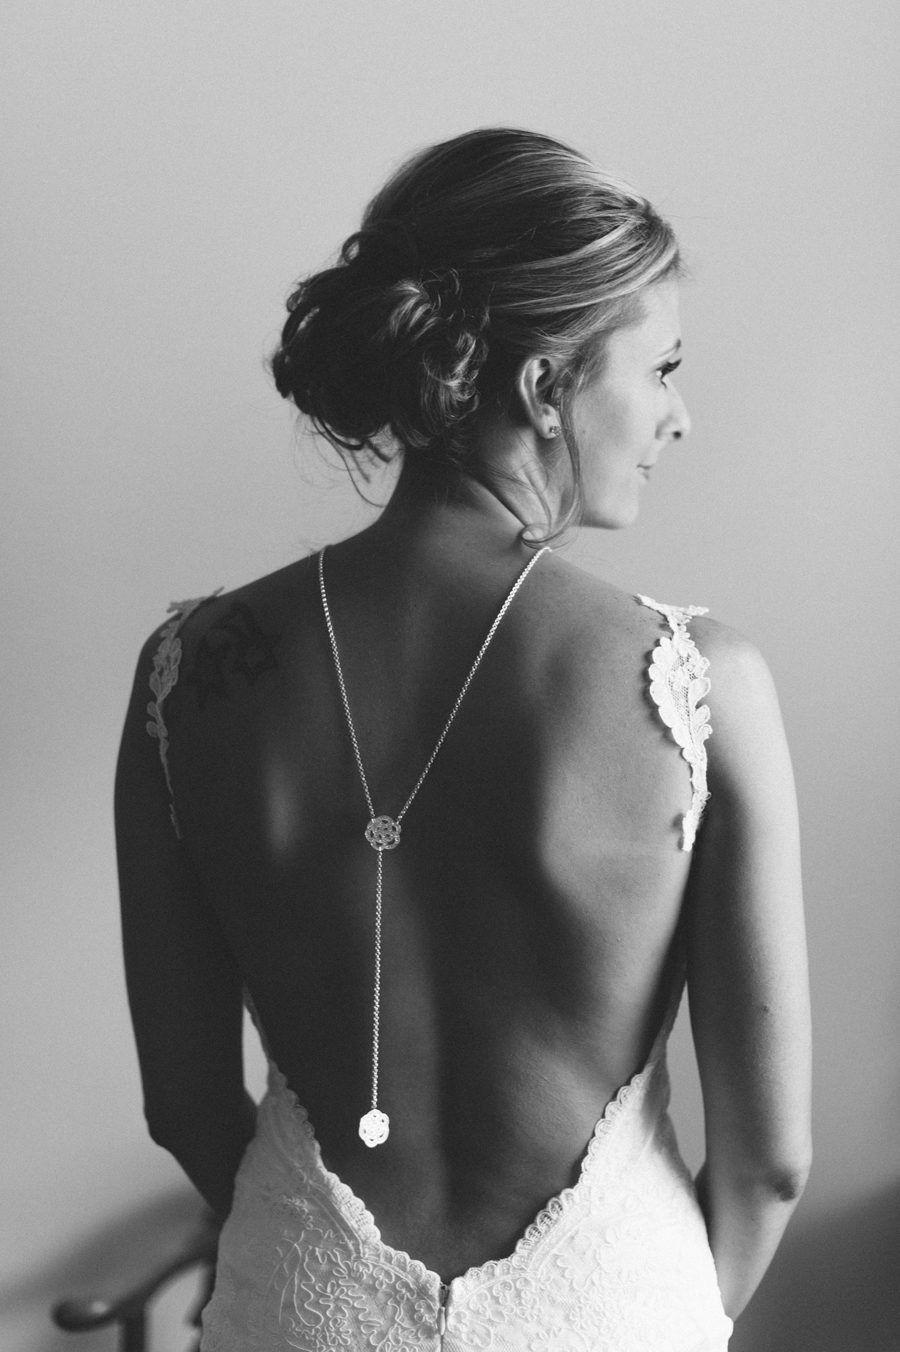 Gorgeous back necklace with floral detail that makes it really stand